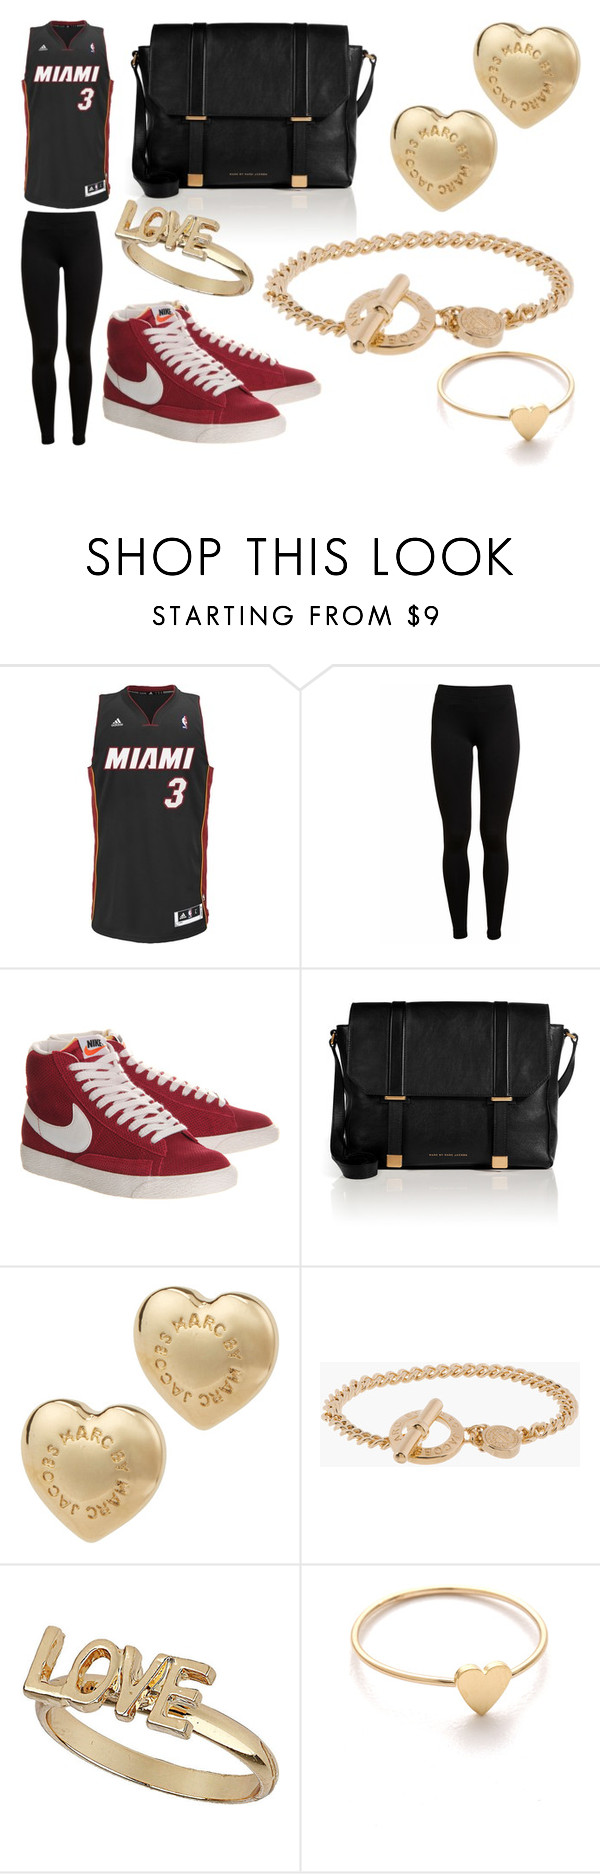 """""""At a Miami Heat Game"""" by laura2703 ❤ liked on Polyvore featuring adidas, Vince, NIKE, Marc by Marc Jacobs, Topshop and Jennifer Meyer Jewelry"""